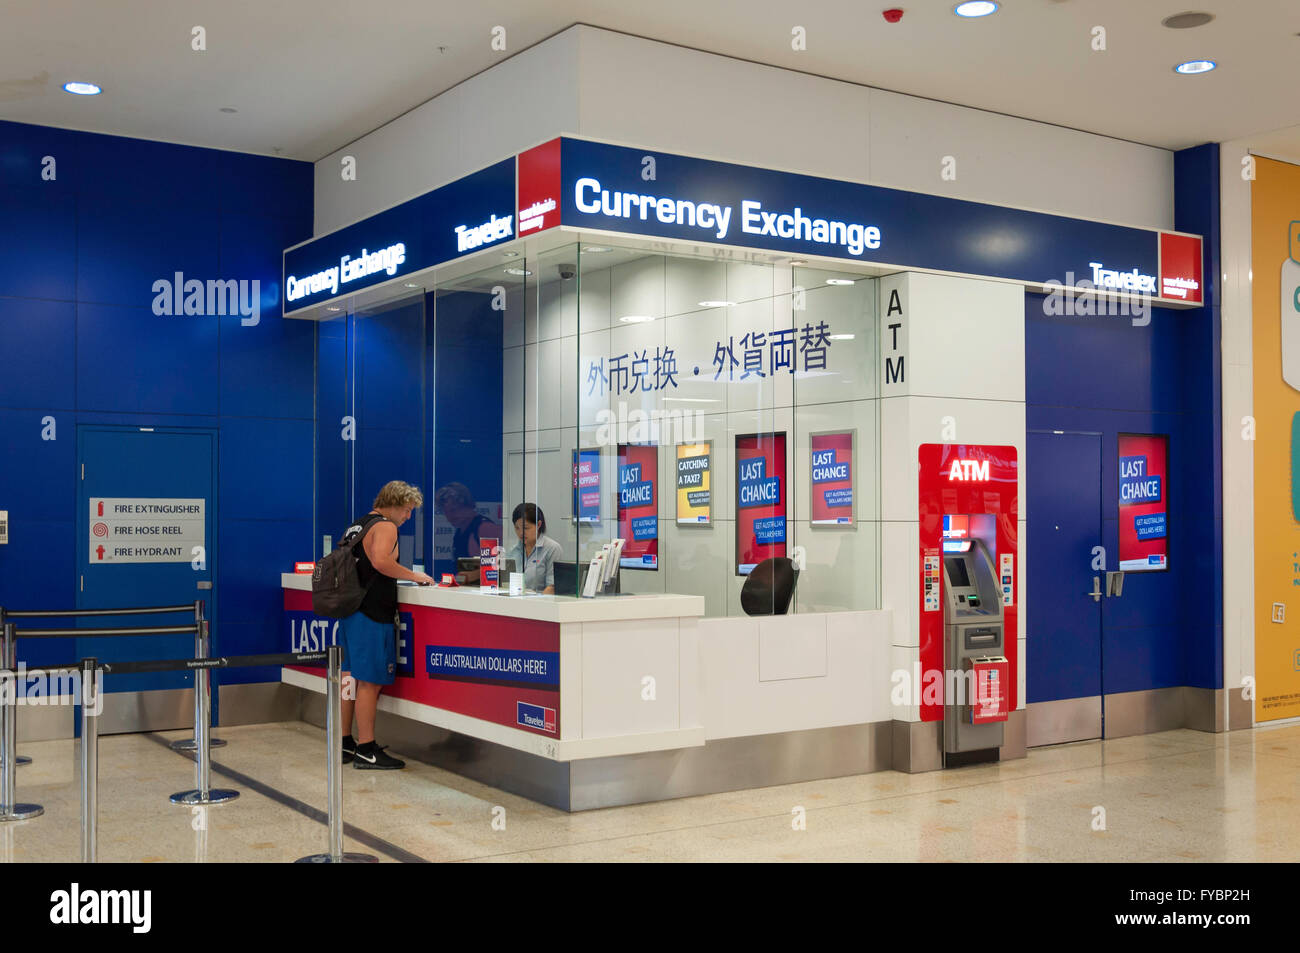 Currency house forex trading